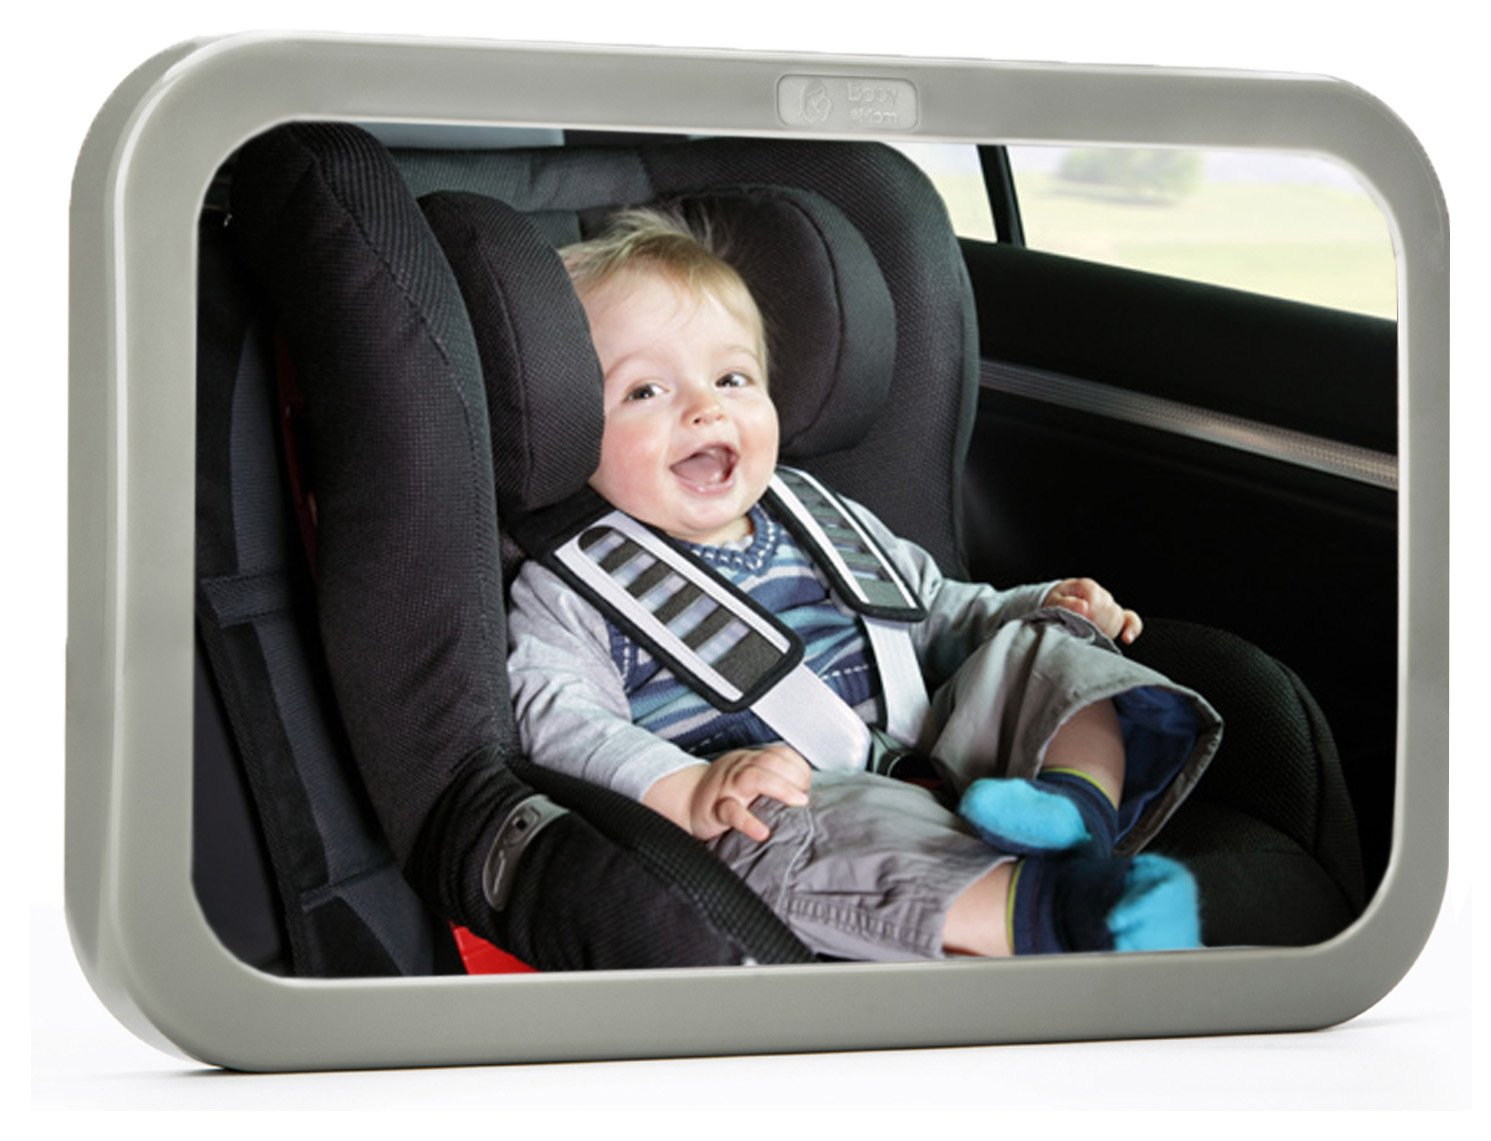 #1 Back Seat Mirror - Baby & Mom Rear View Baby Mirror - Easily Watch your Precious Child In-Car - Adjustable, Convex and Shatterproof Glass by Baby & Mom